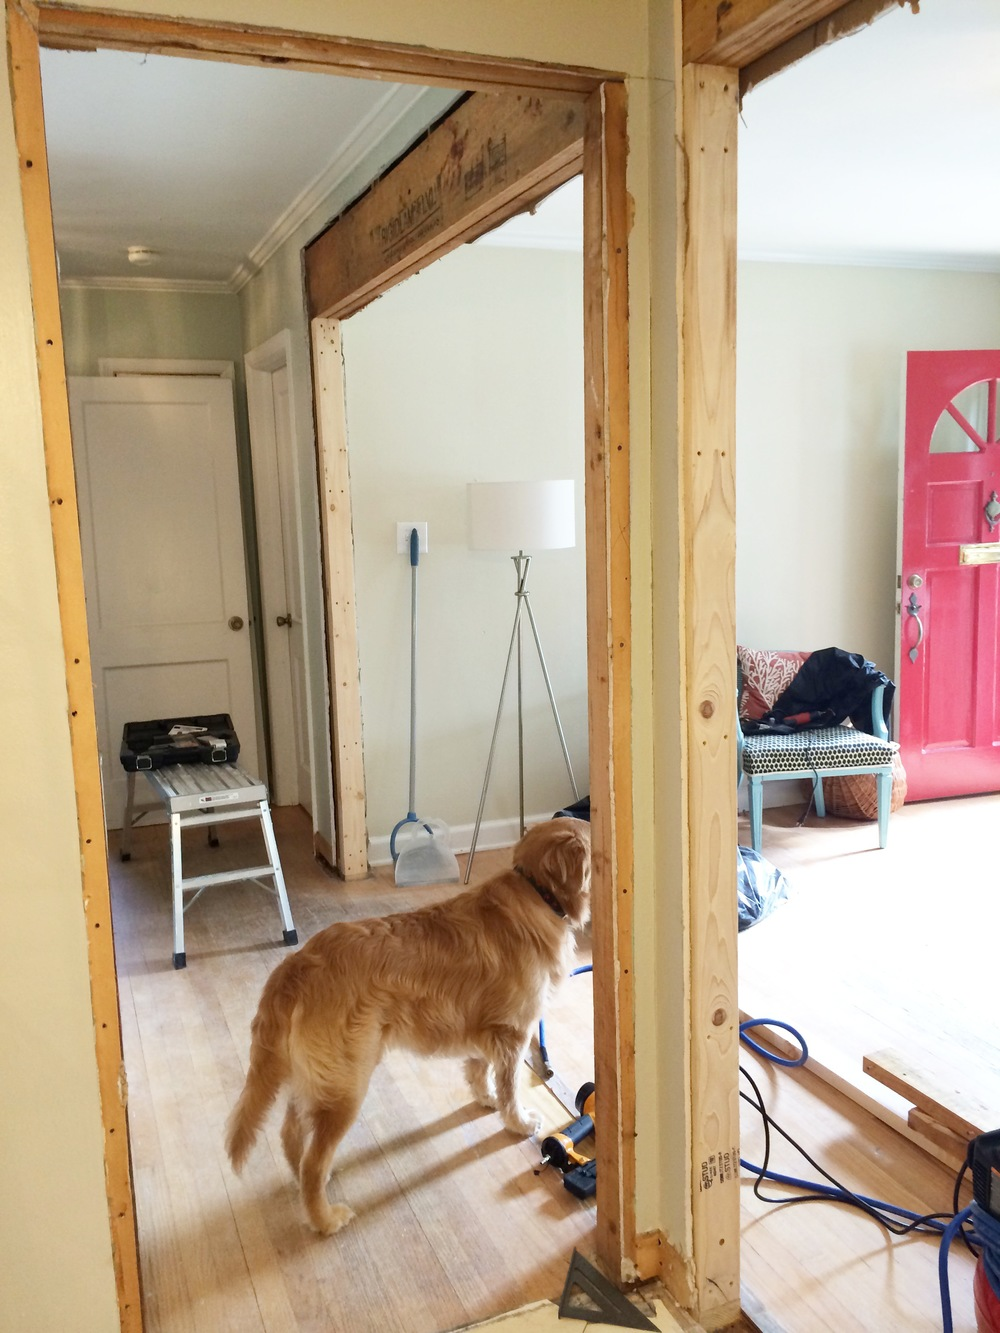 Post wall demolition and pre drywall installation, Murph enjoys the new view!